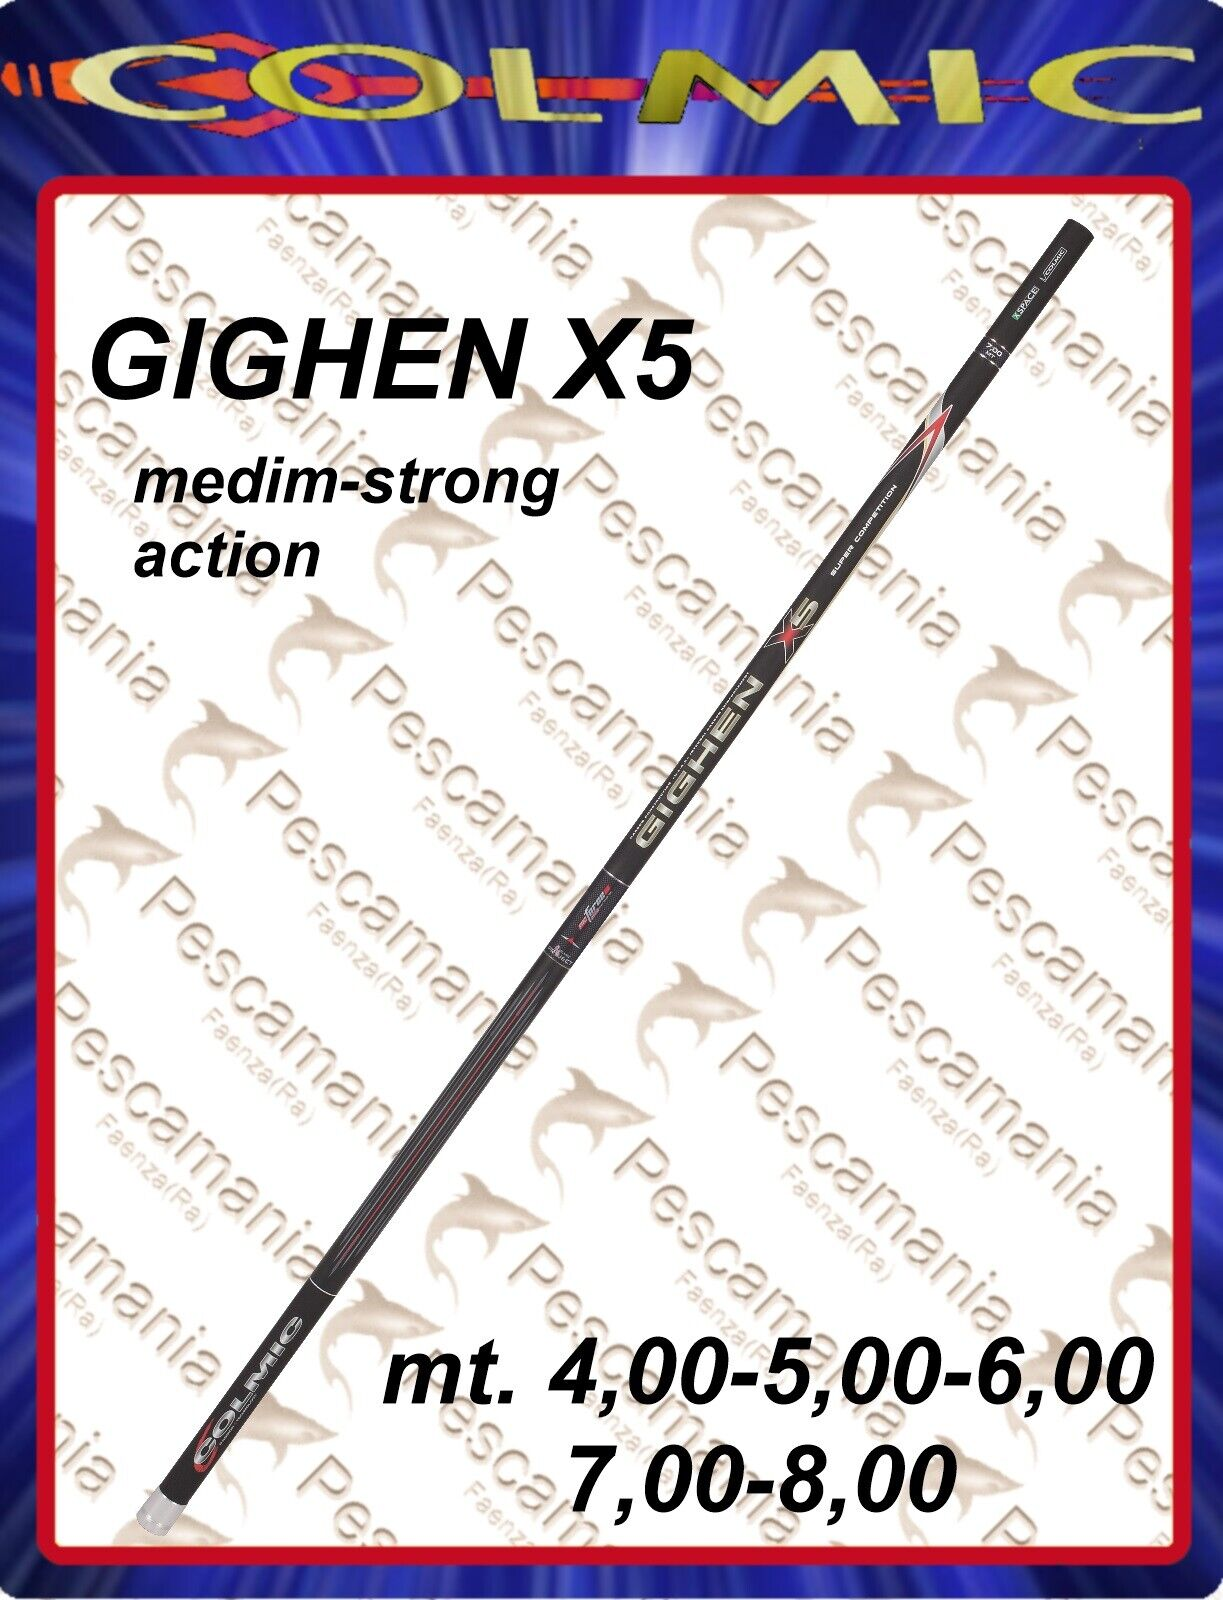 Colmic rod GIGHEN X5 fixed m4.00-5,00-6,00-7,00-8,00 telescopic